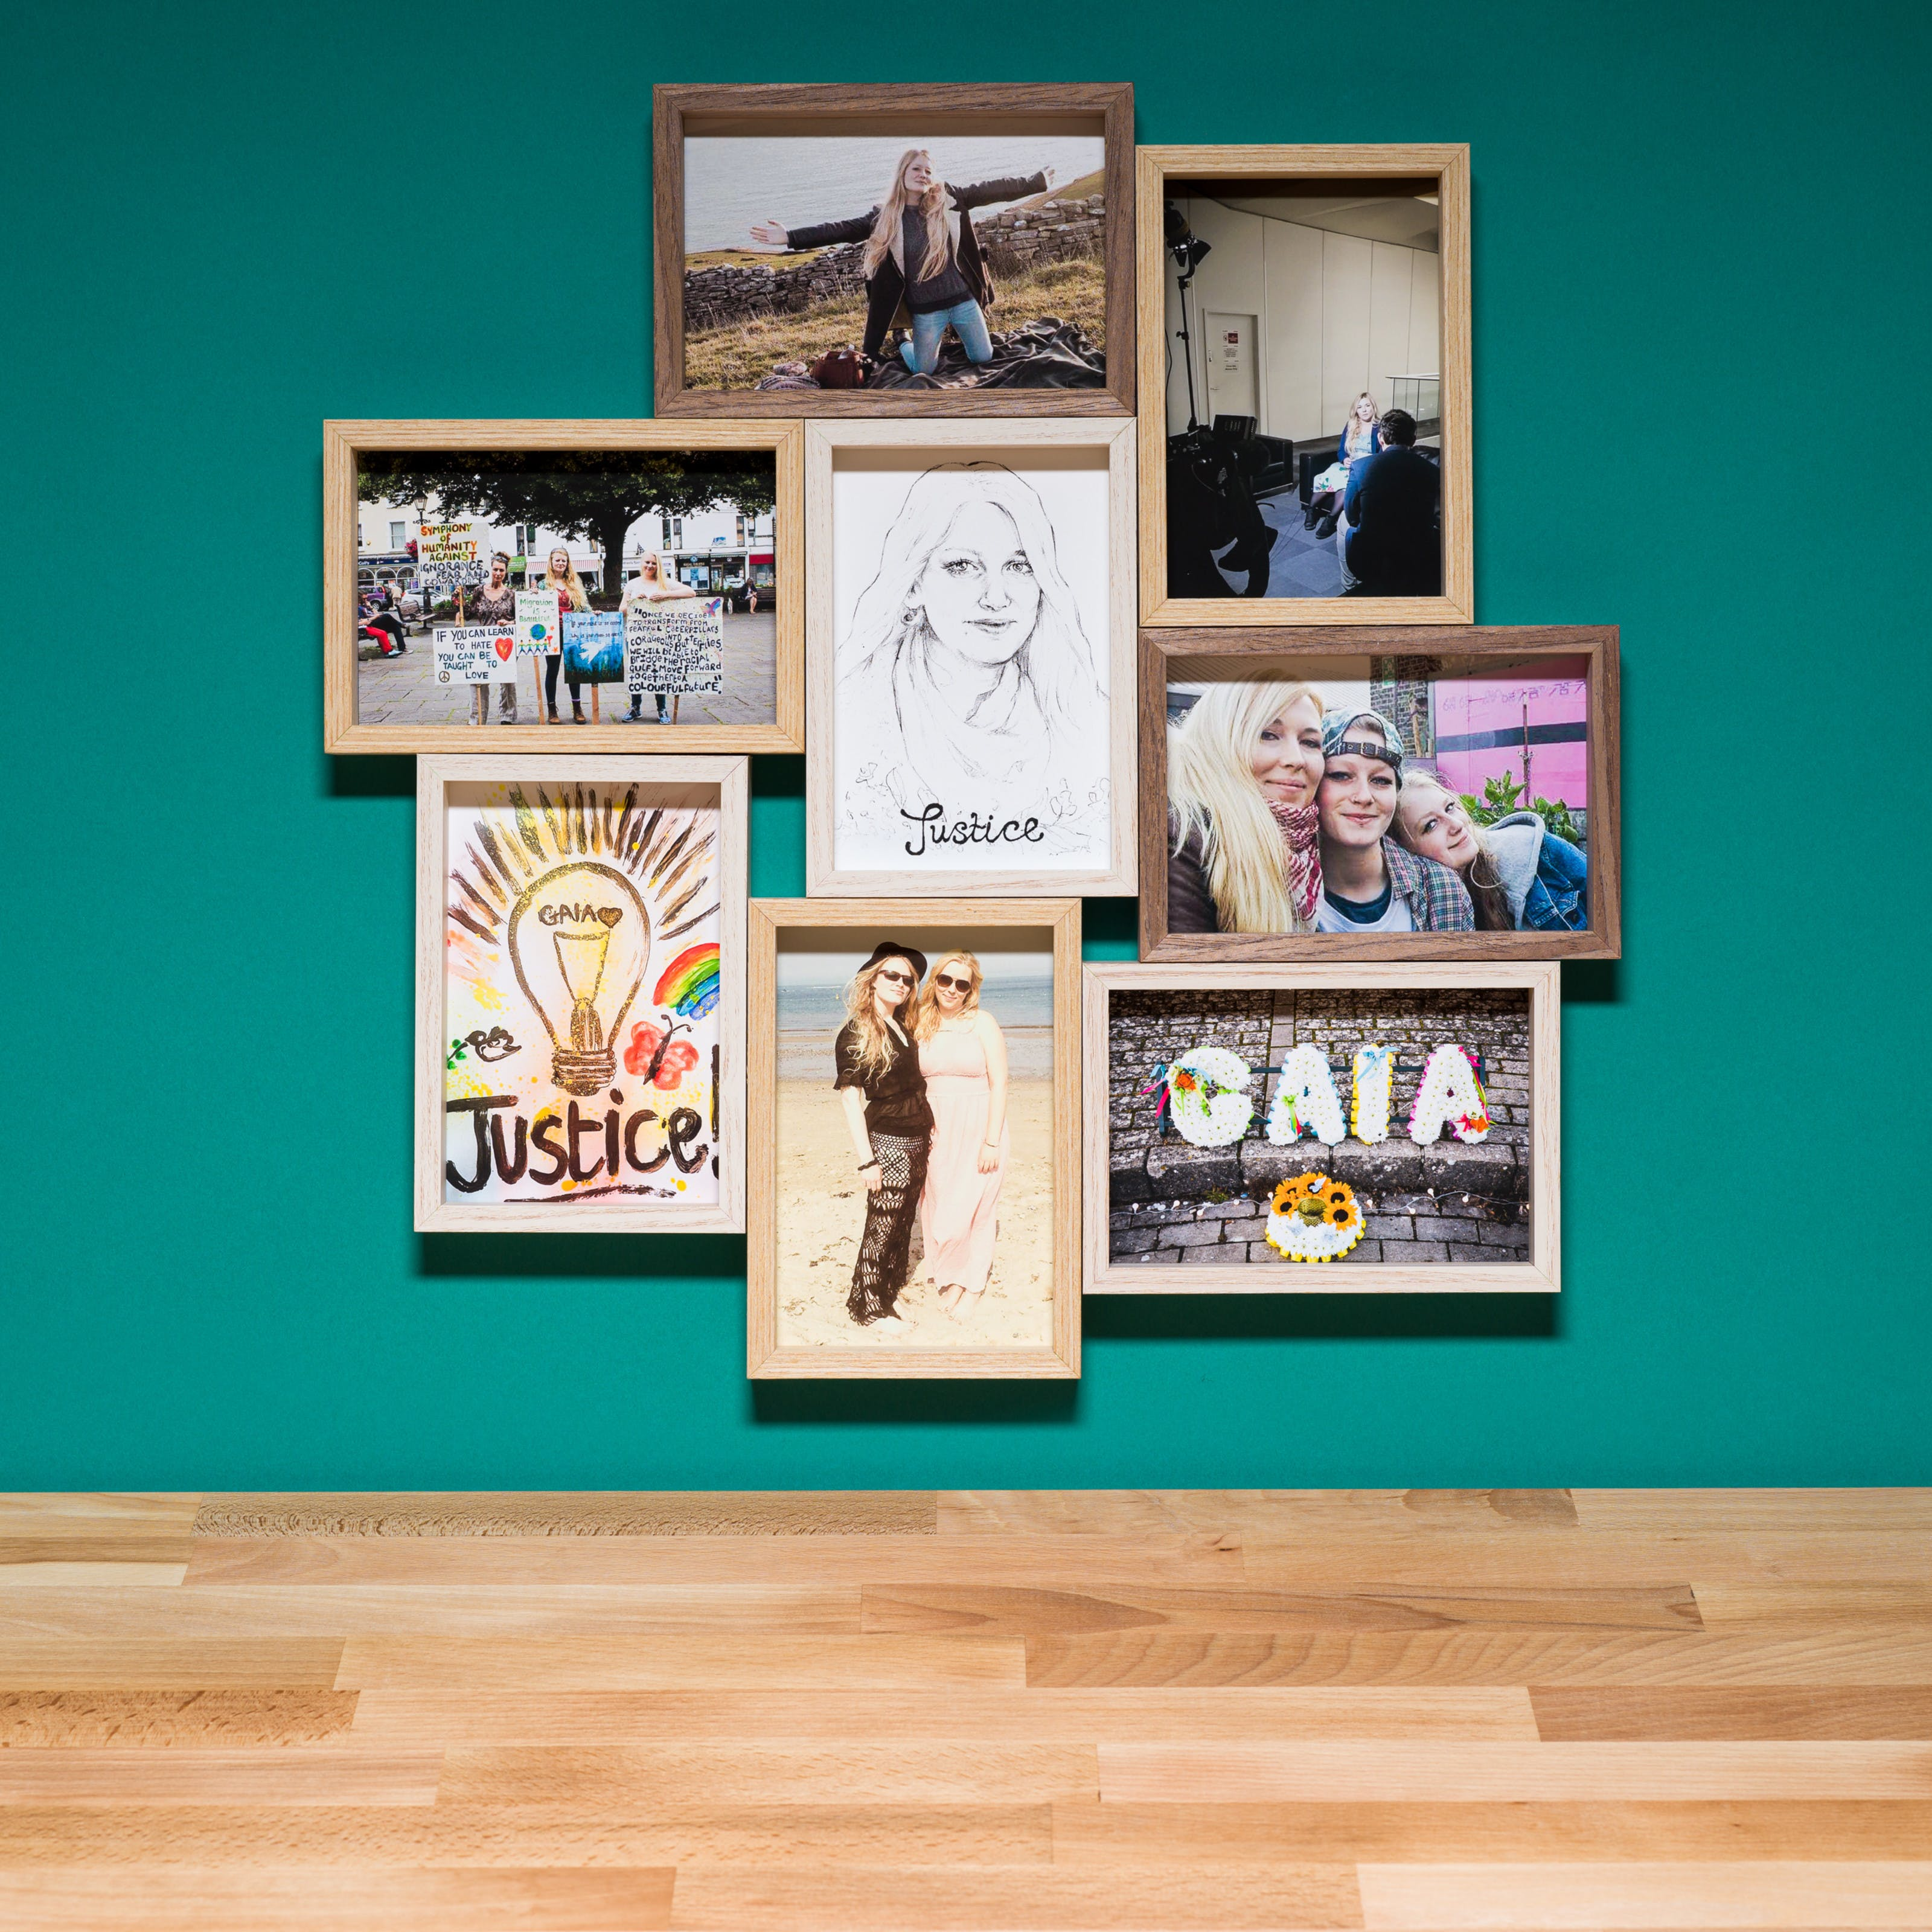 Photograph of a multiframe photo frame containing eight photographs, seven in colour and one in black and white. The frame is hung on a cyan-coloured wall above a wood block tabletop.